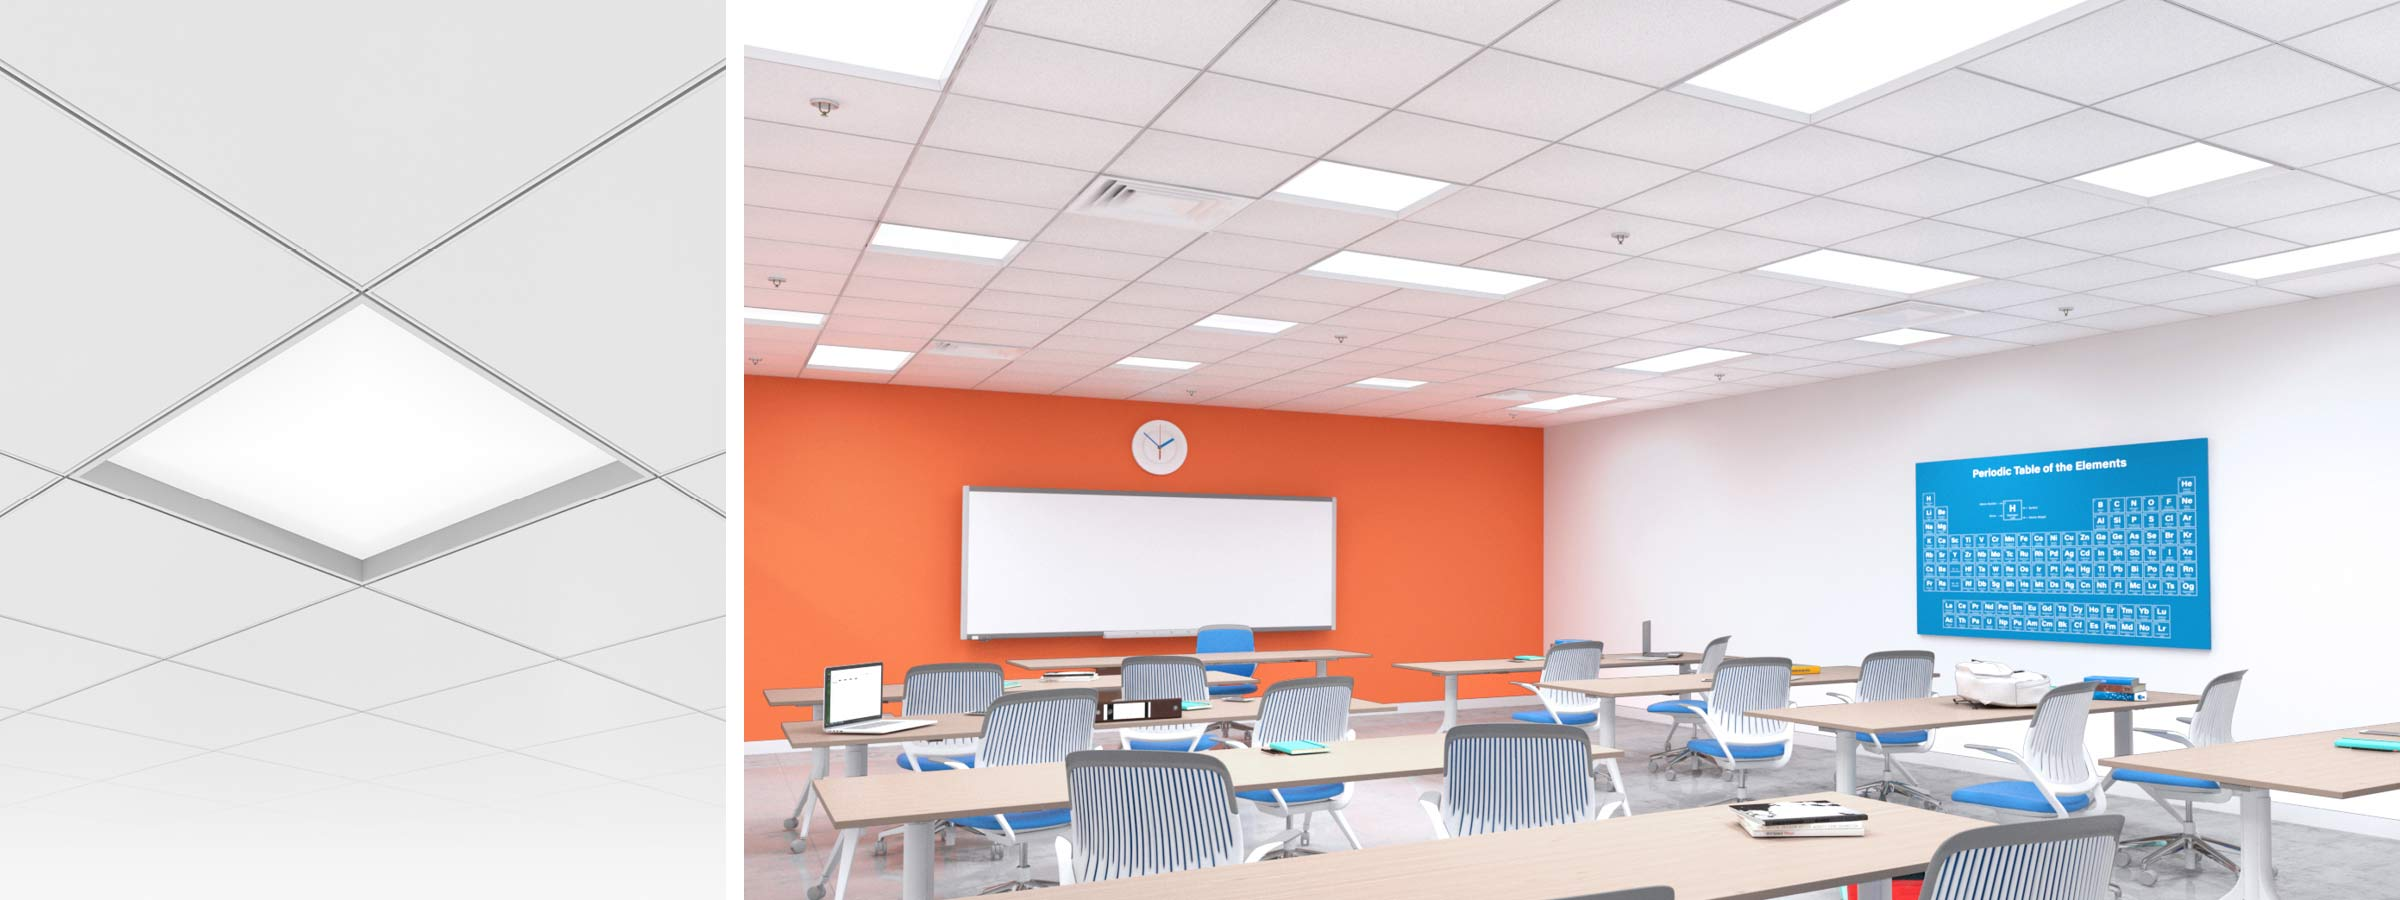 Skyeplane Regressed Render Recessed Mixt Tile Classroom HERO